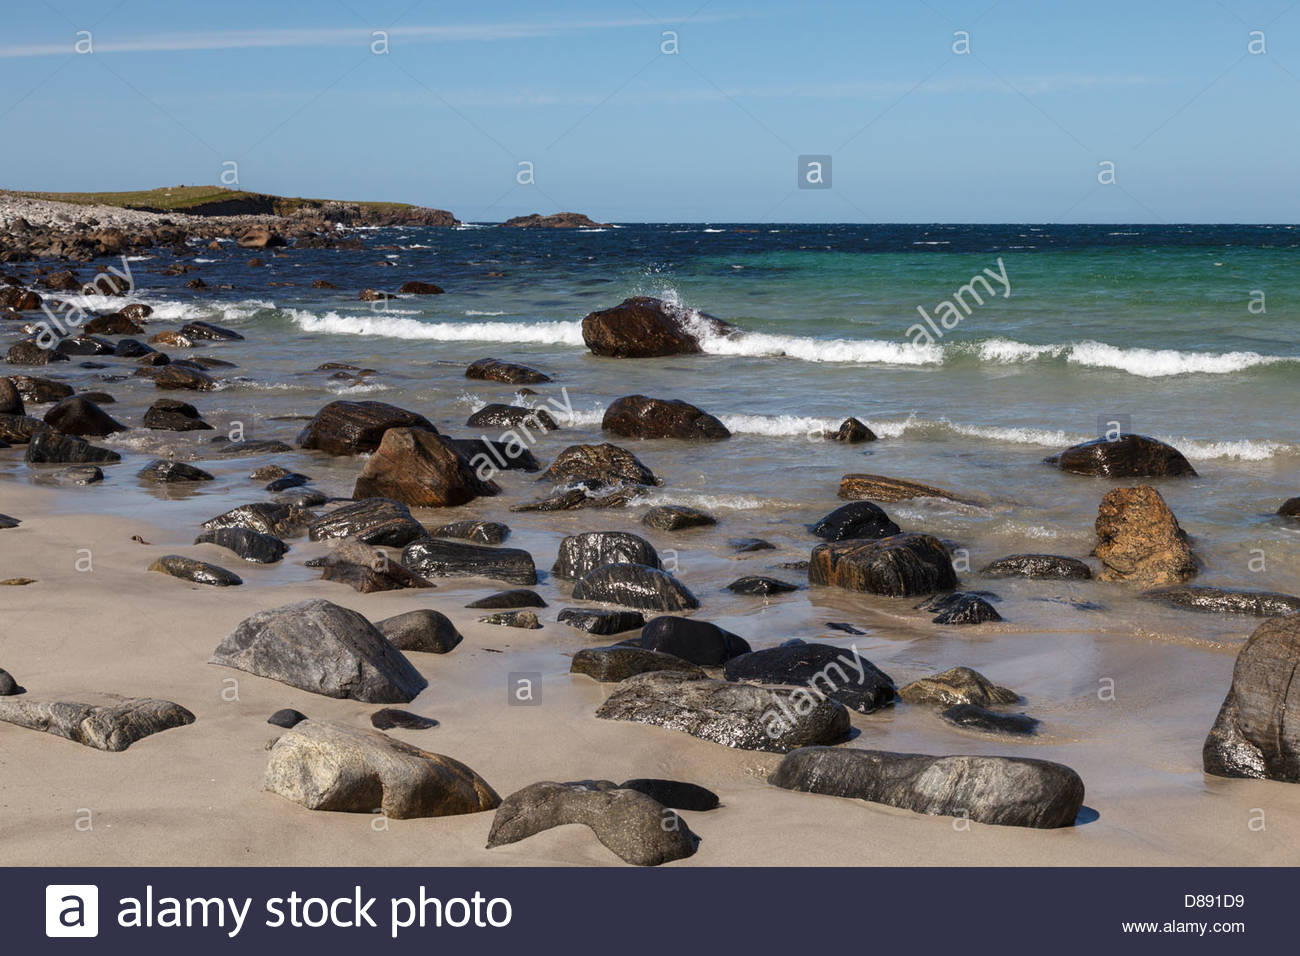 The beach at Shawbost (Siabost), Isle of Lewis, Outer Hebrides, Scotland, United Kingdom - Stock Image